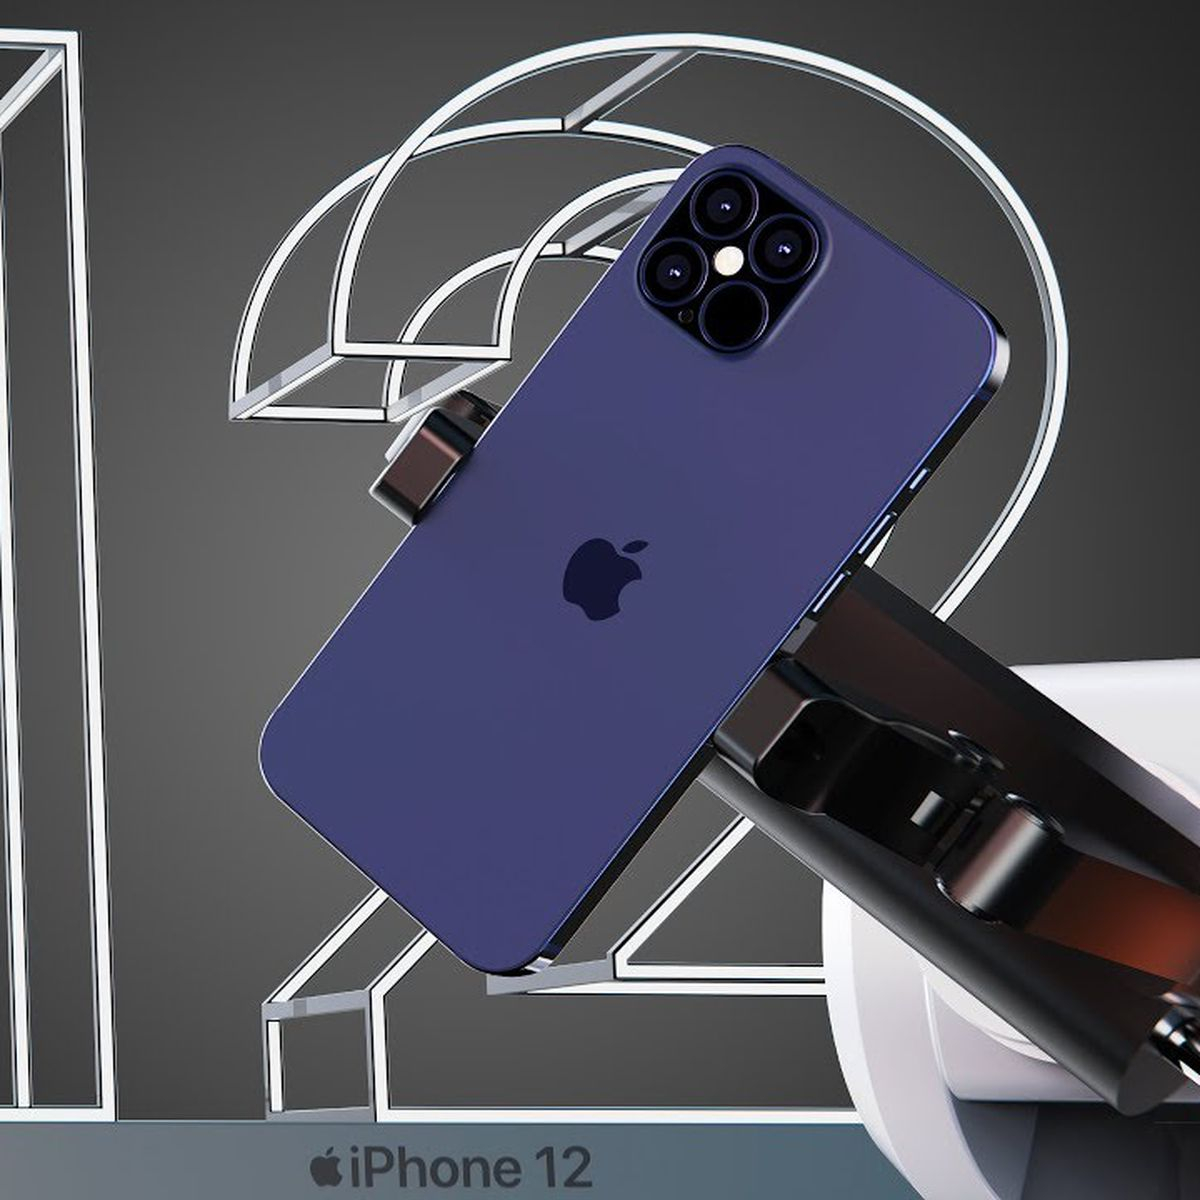 iphone 12 120hz promotion 3x camera face id